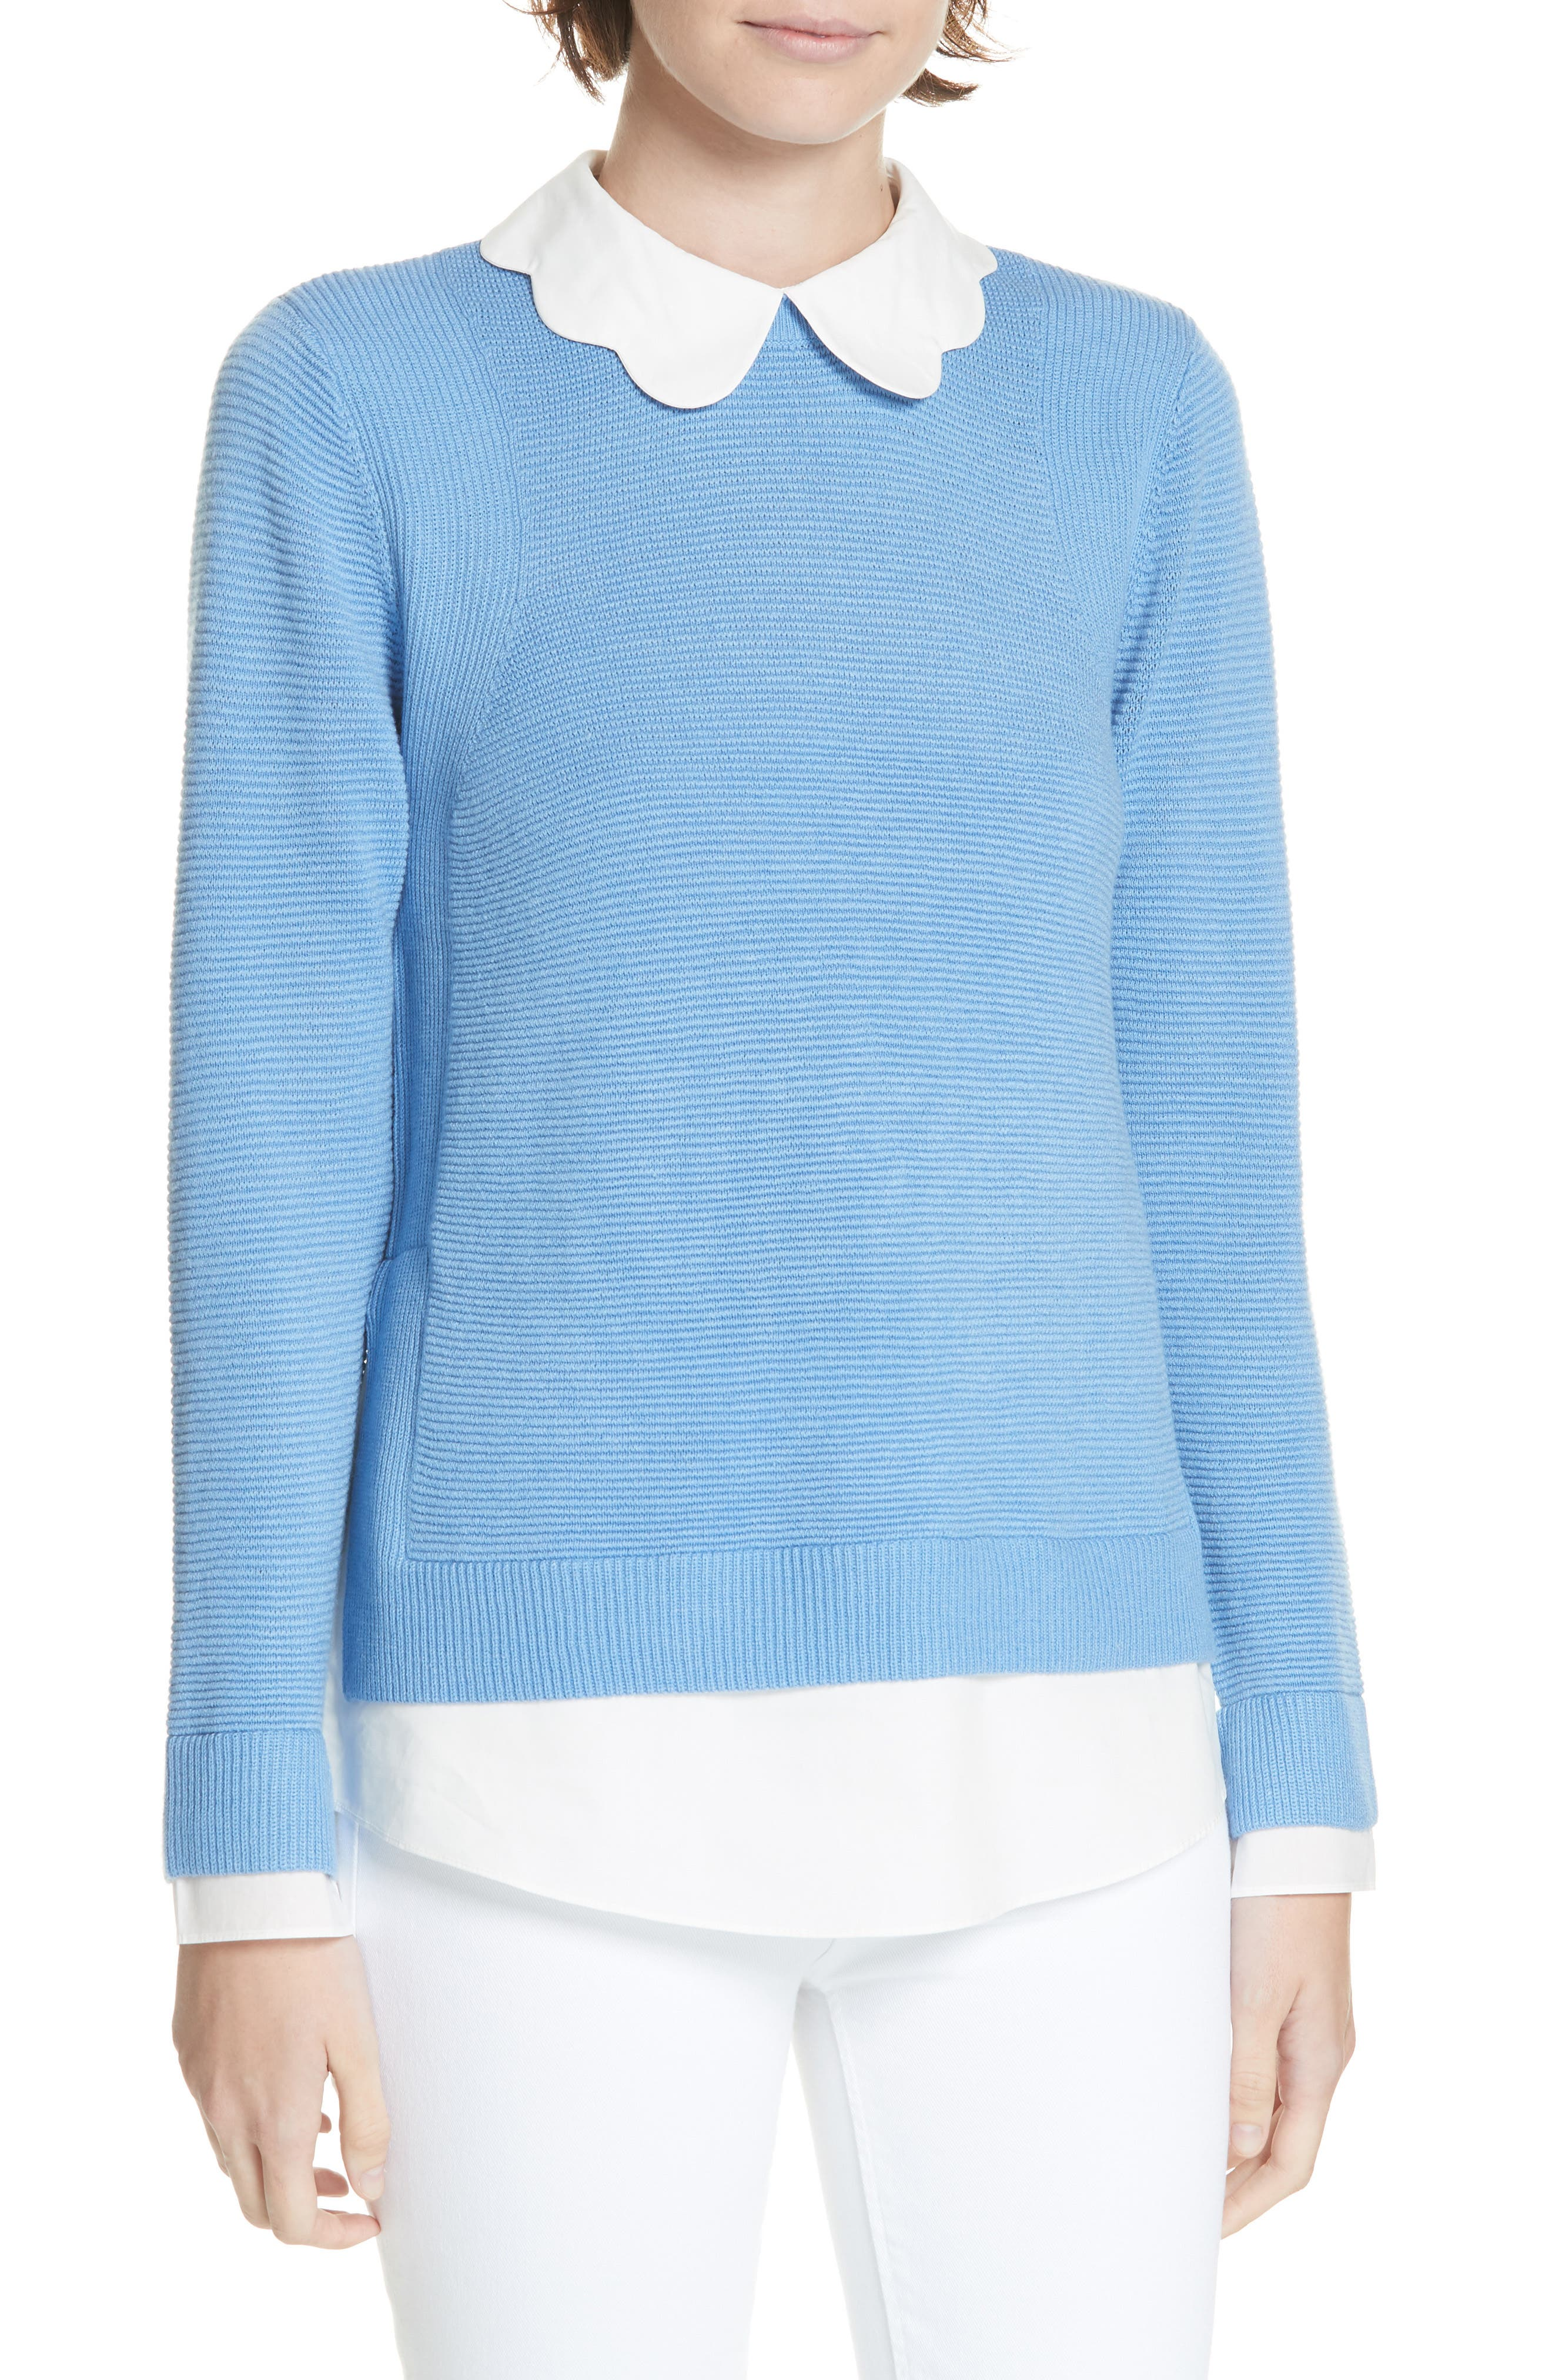 Bronwen Scalloped Collar Sweater, Main, color, 424